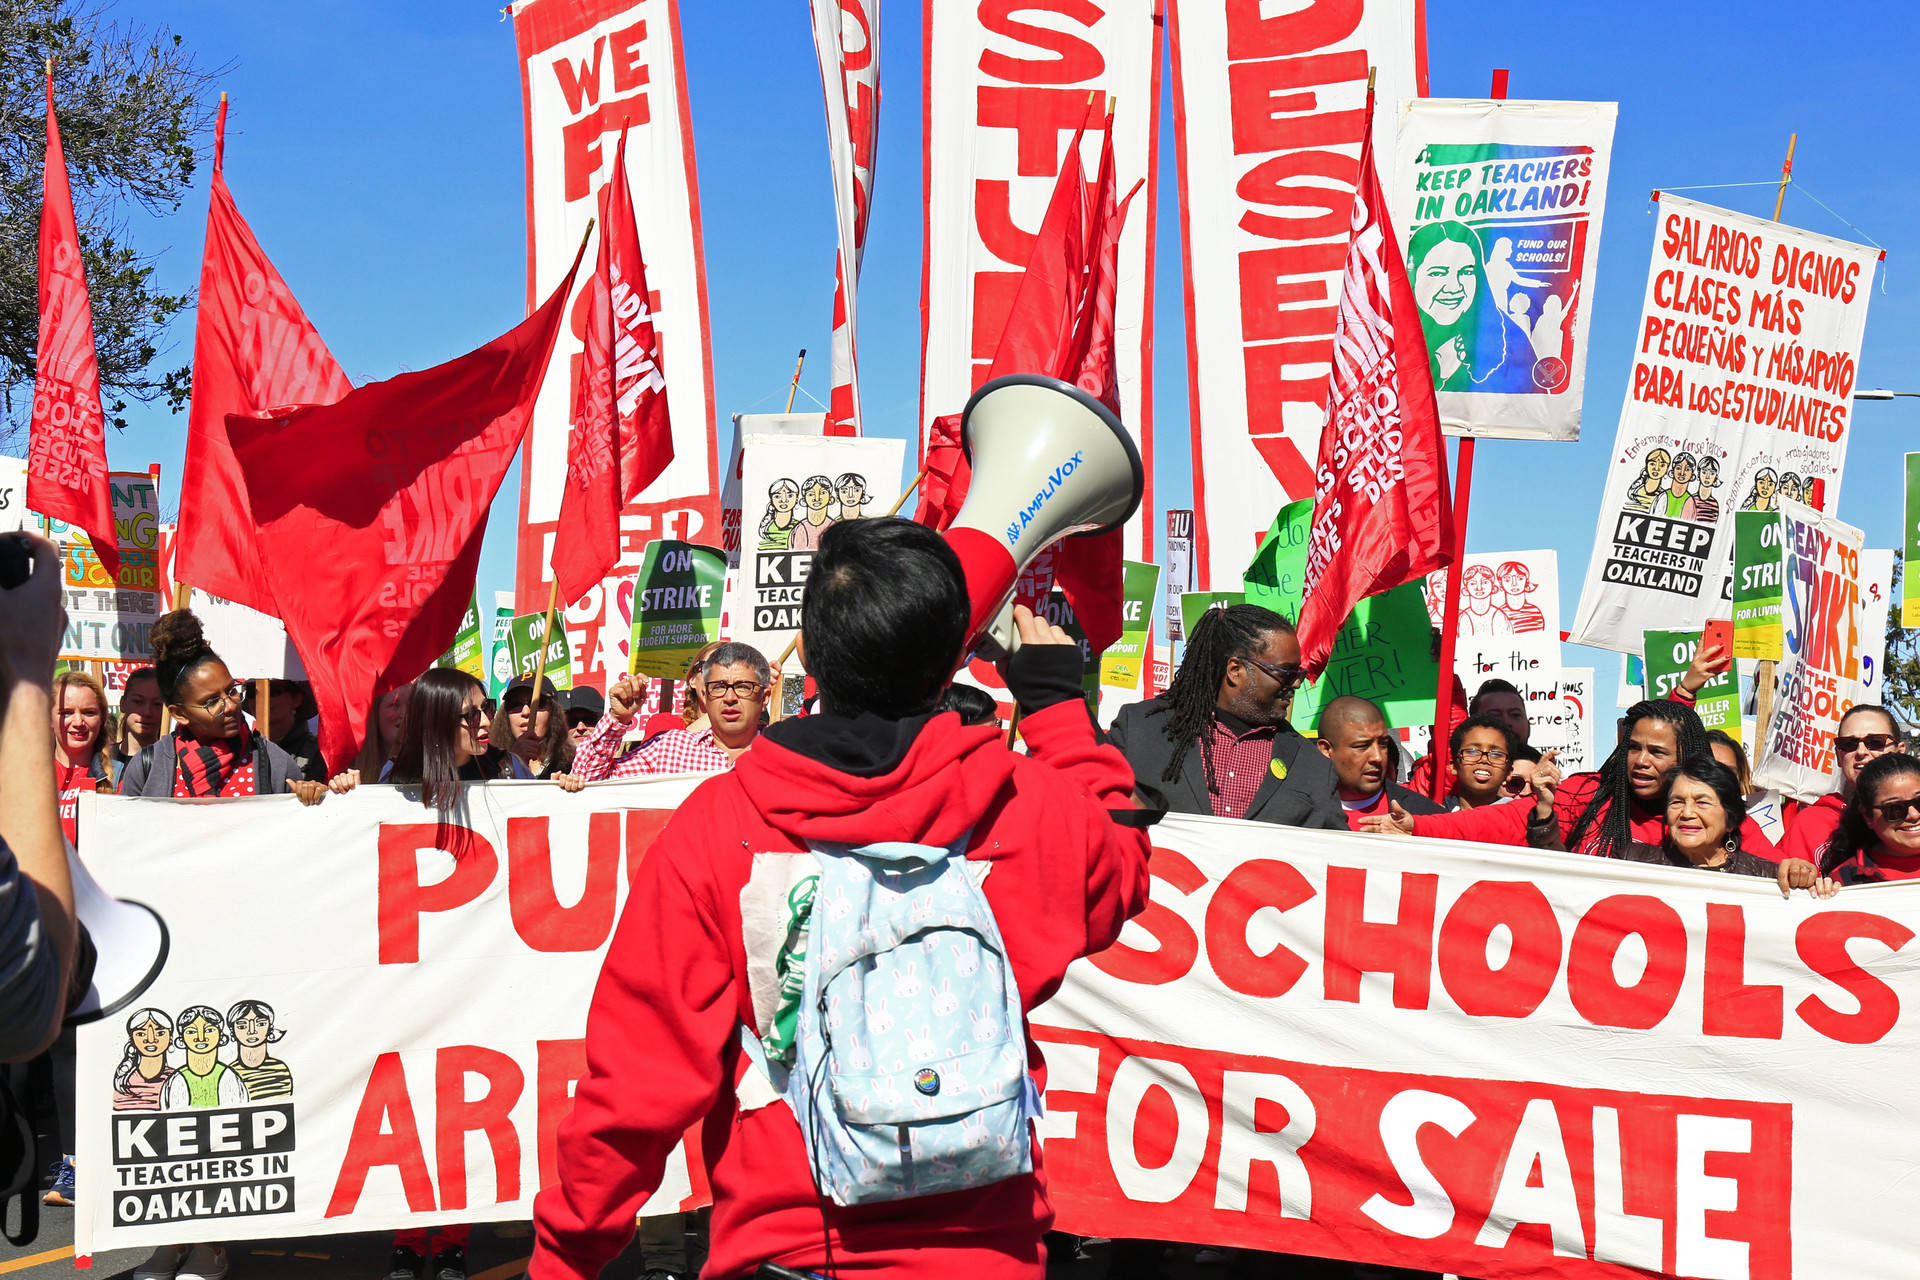 Oakland teachers, joined by student supporters, march down Adeline Street in West Oakland on Feb. 22, 2019, the second day of a districtwide teachers strike.   Stephanie Lister/KQED